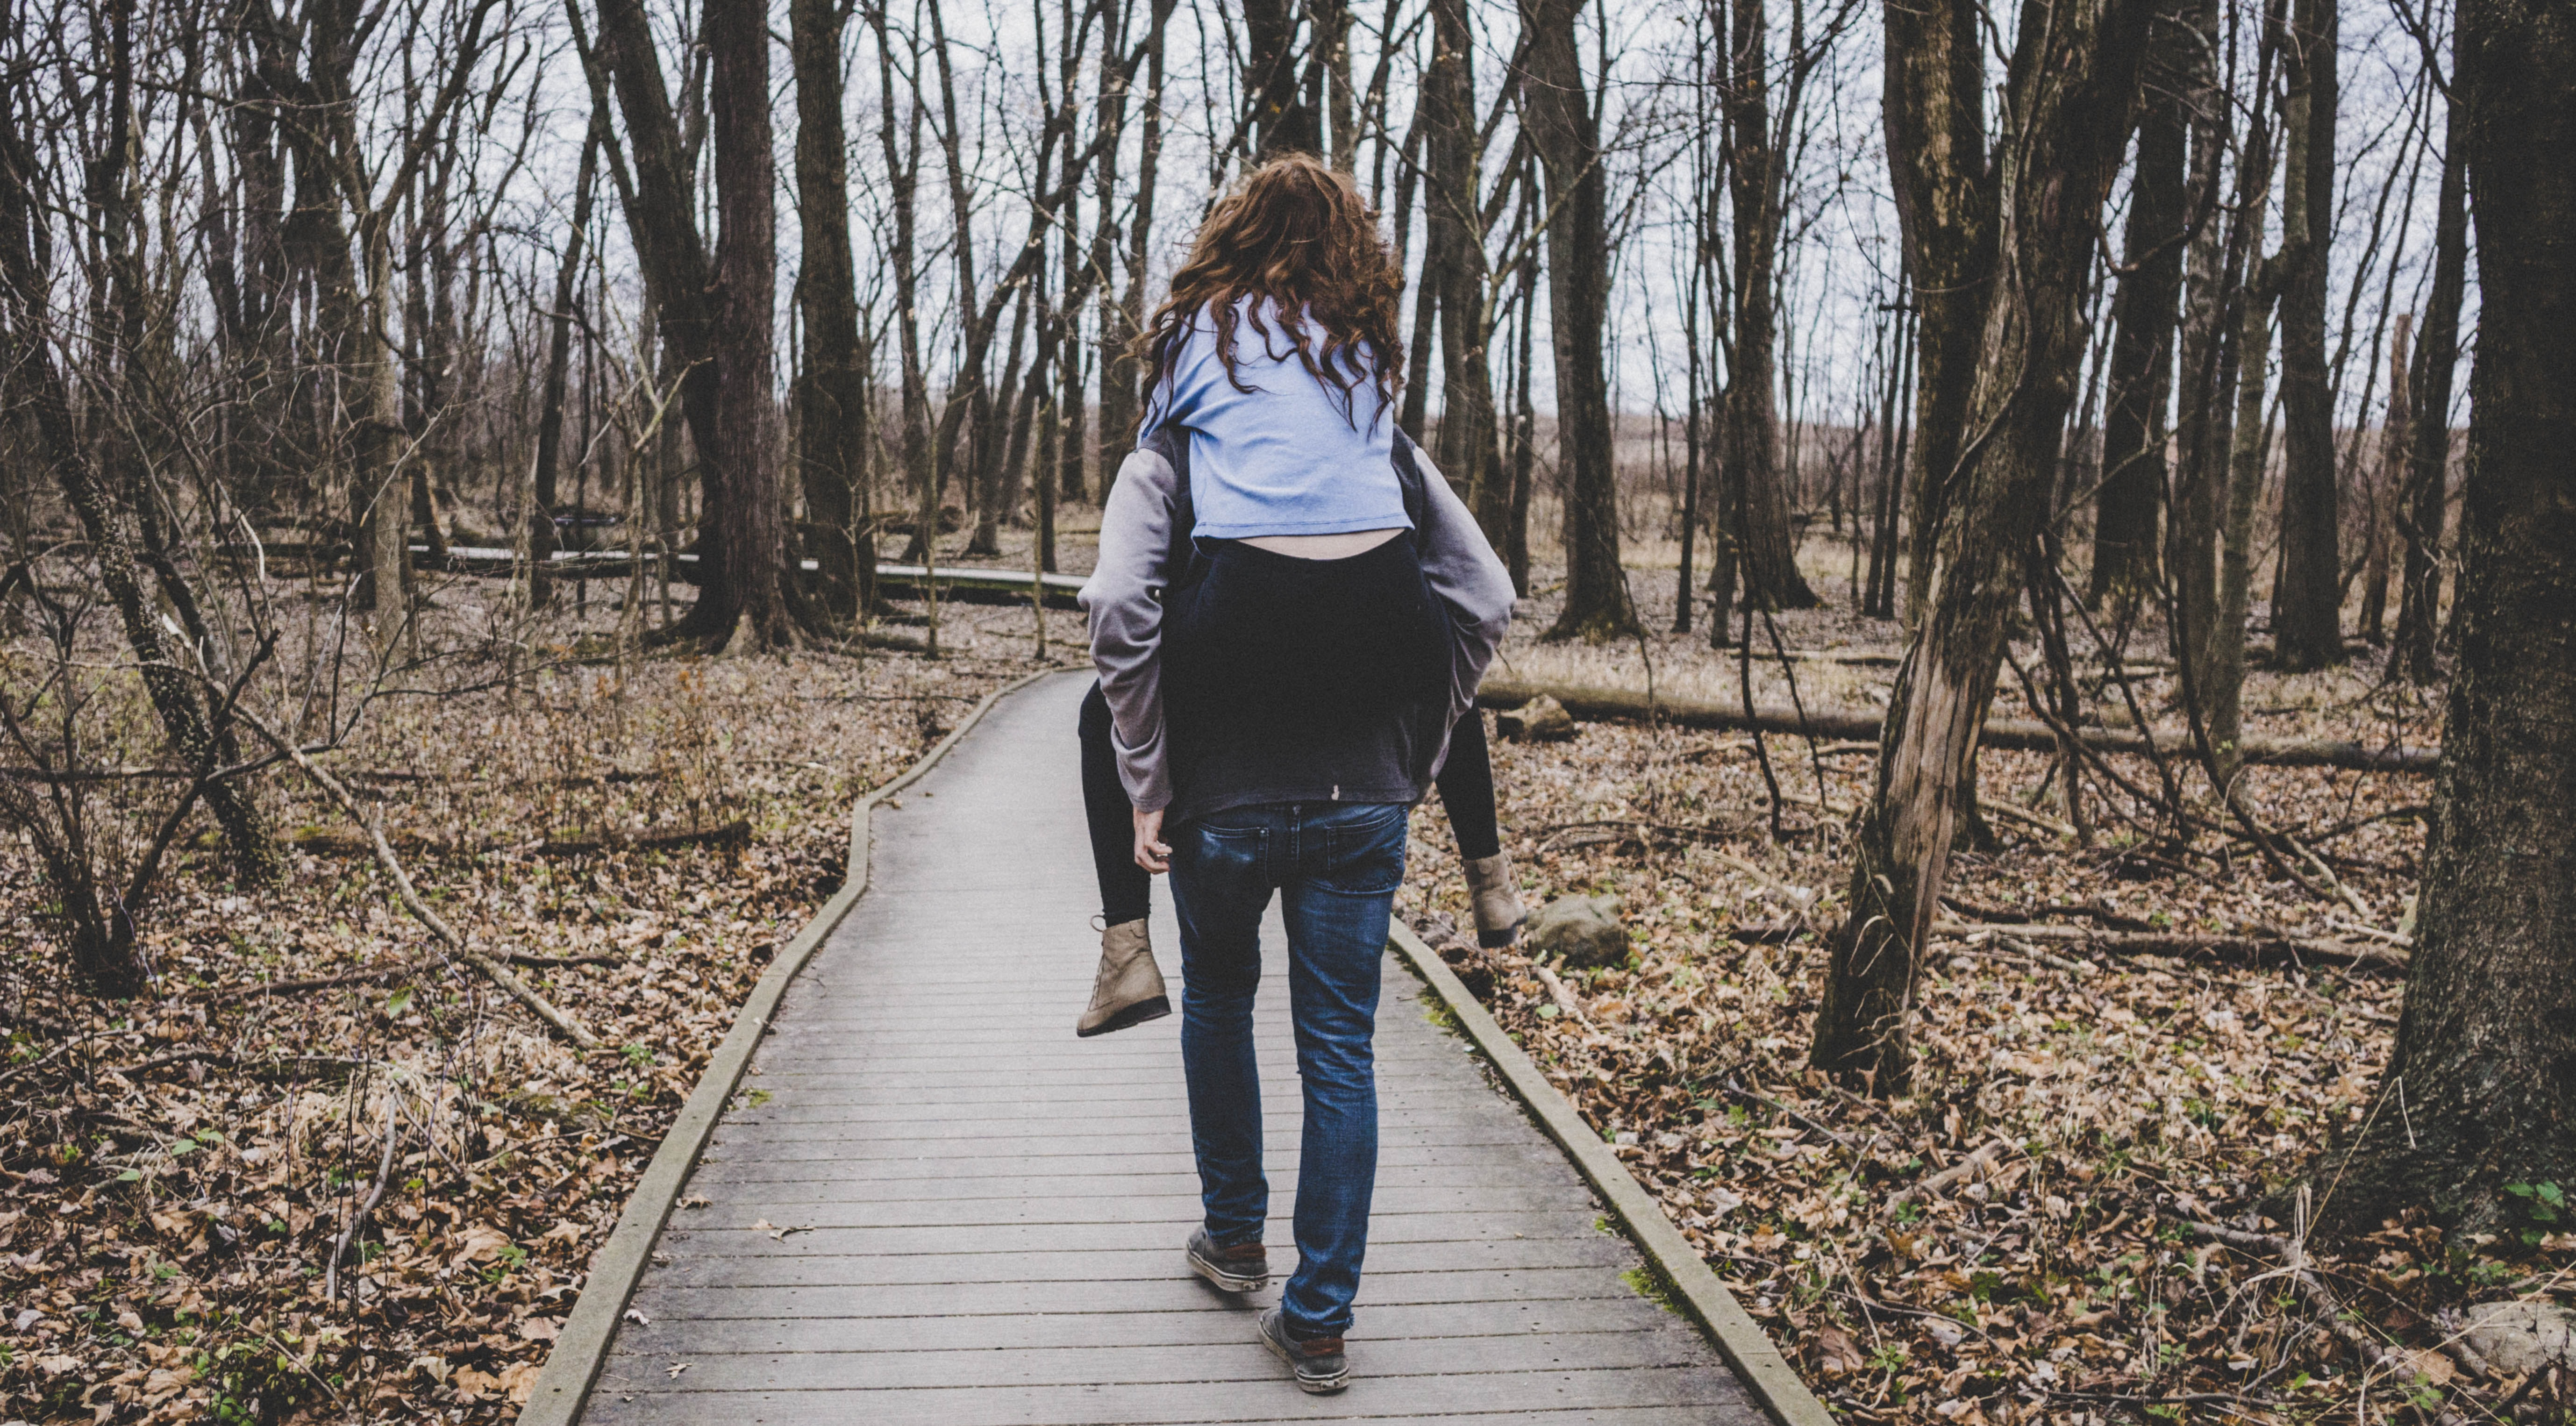 man carrying a woman on his back in forest path